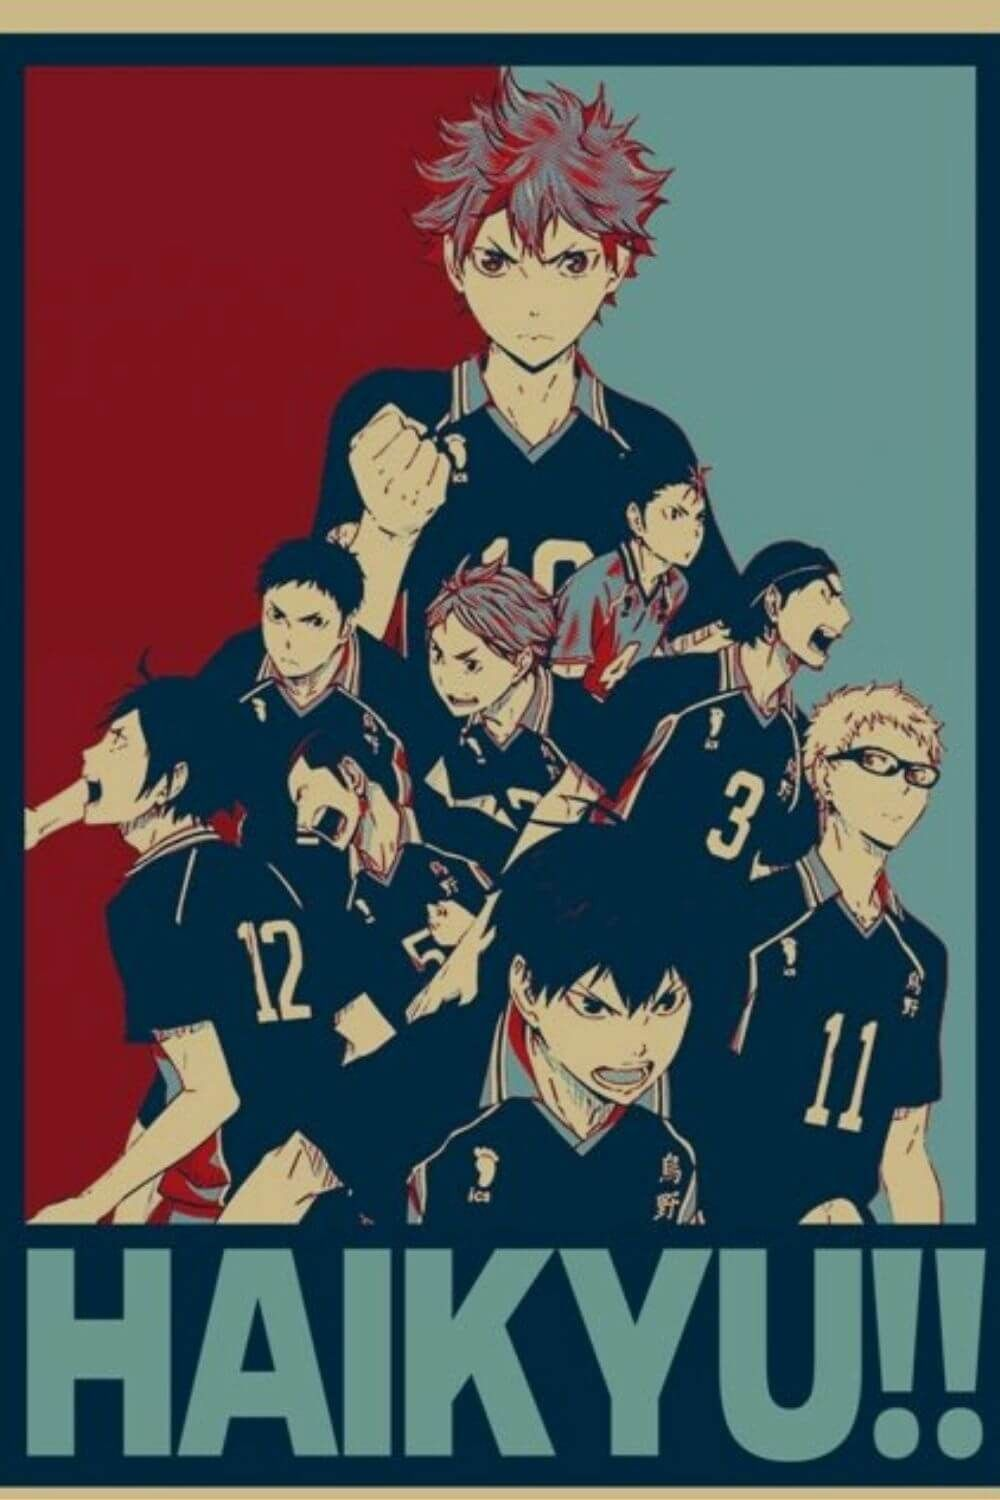 Haikyuu Season 4 Episode 25: Release date and unknown facts are revealed!